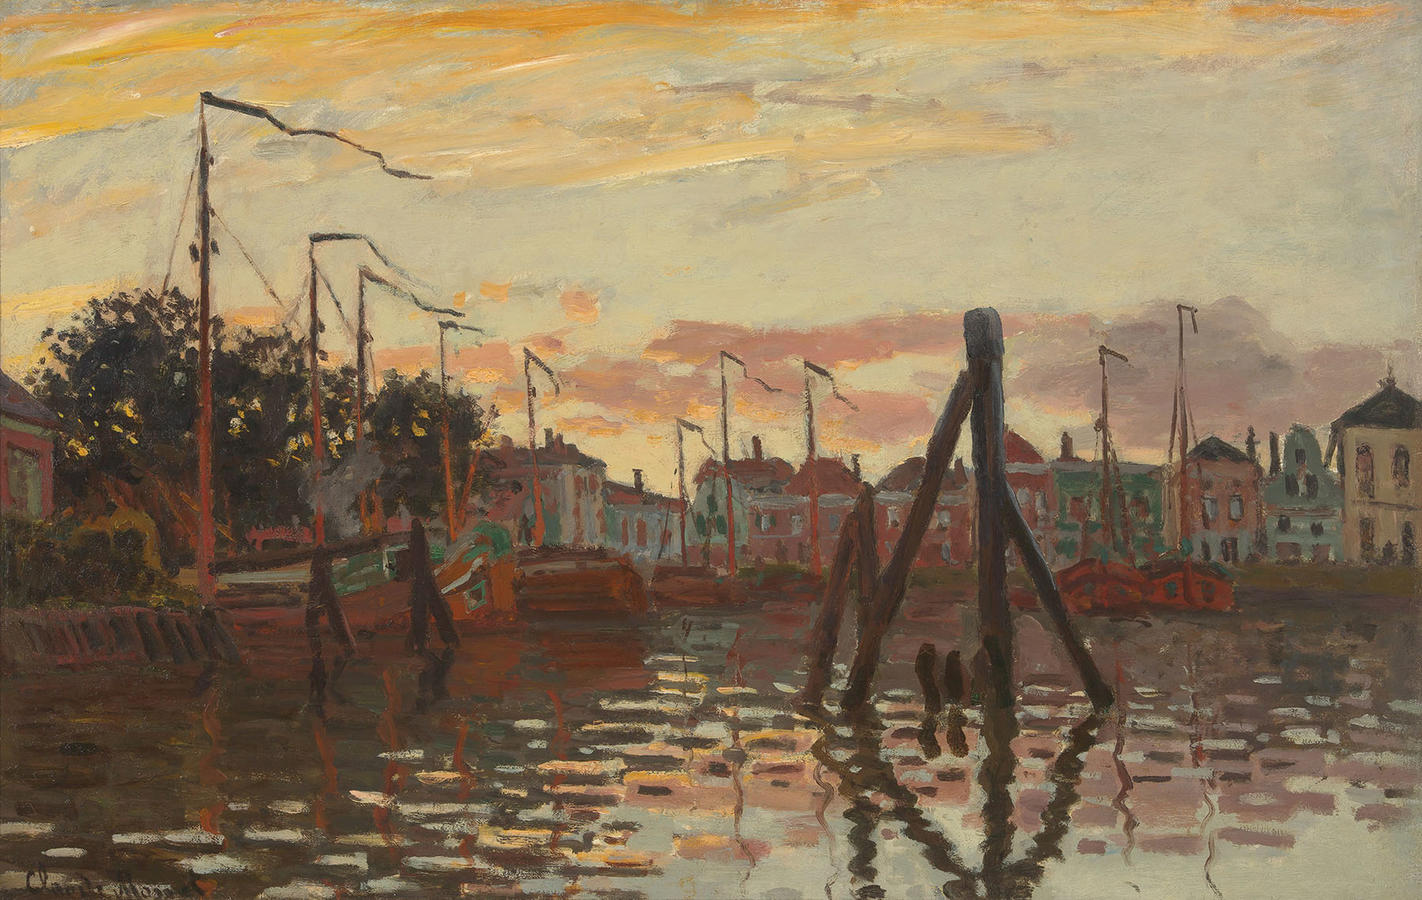 Claude Monet, The Port of Zaandam, 1871, Oil on Canvas, 19 x 29 ½ x 1 3/8 in. (48.26 x 74.93 x 3.49 cm.), Private Collection